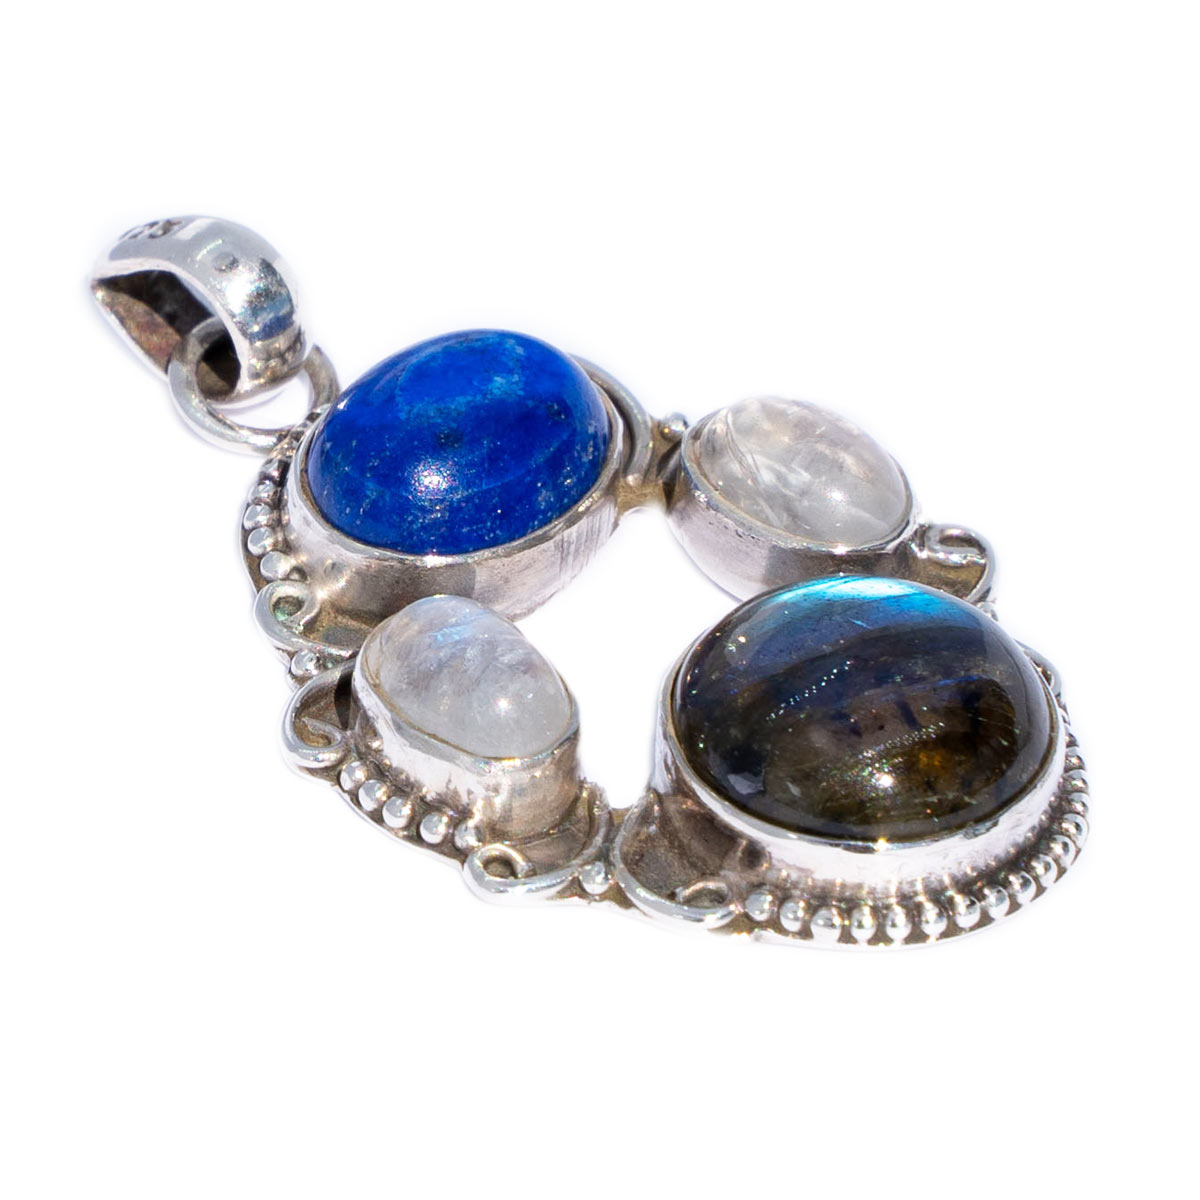 Sri Avinash Infused™ Lapis Lazuli, Labradorite & Moonstone Pendant in Sterling Silver - Divine Blessings Infusion